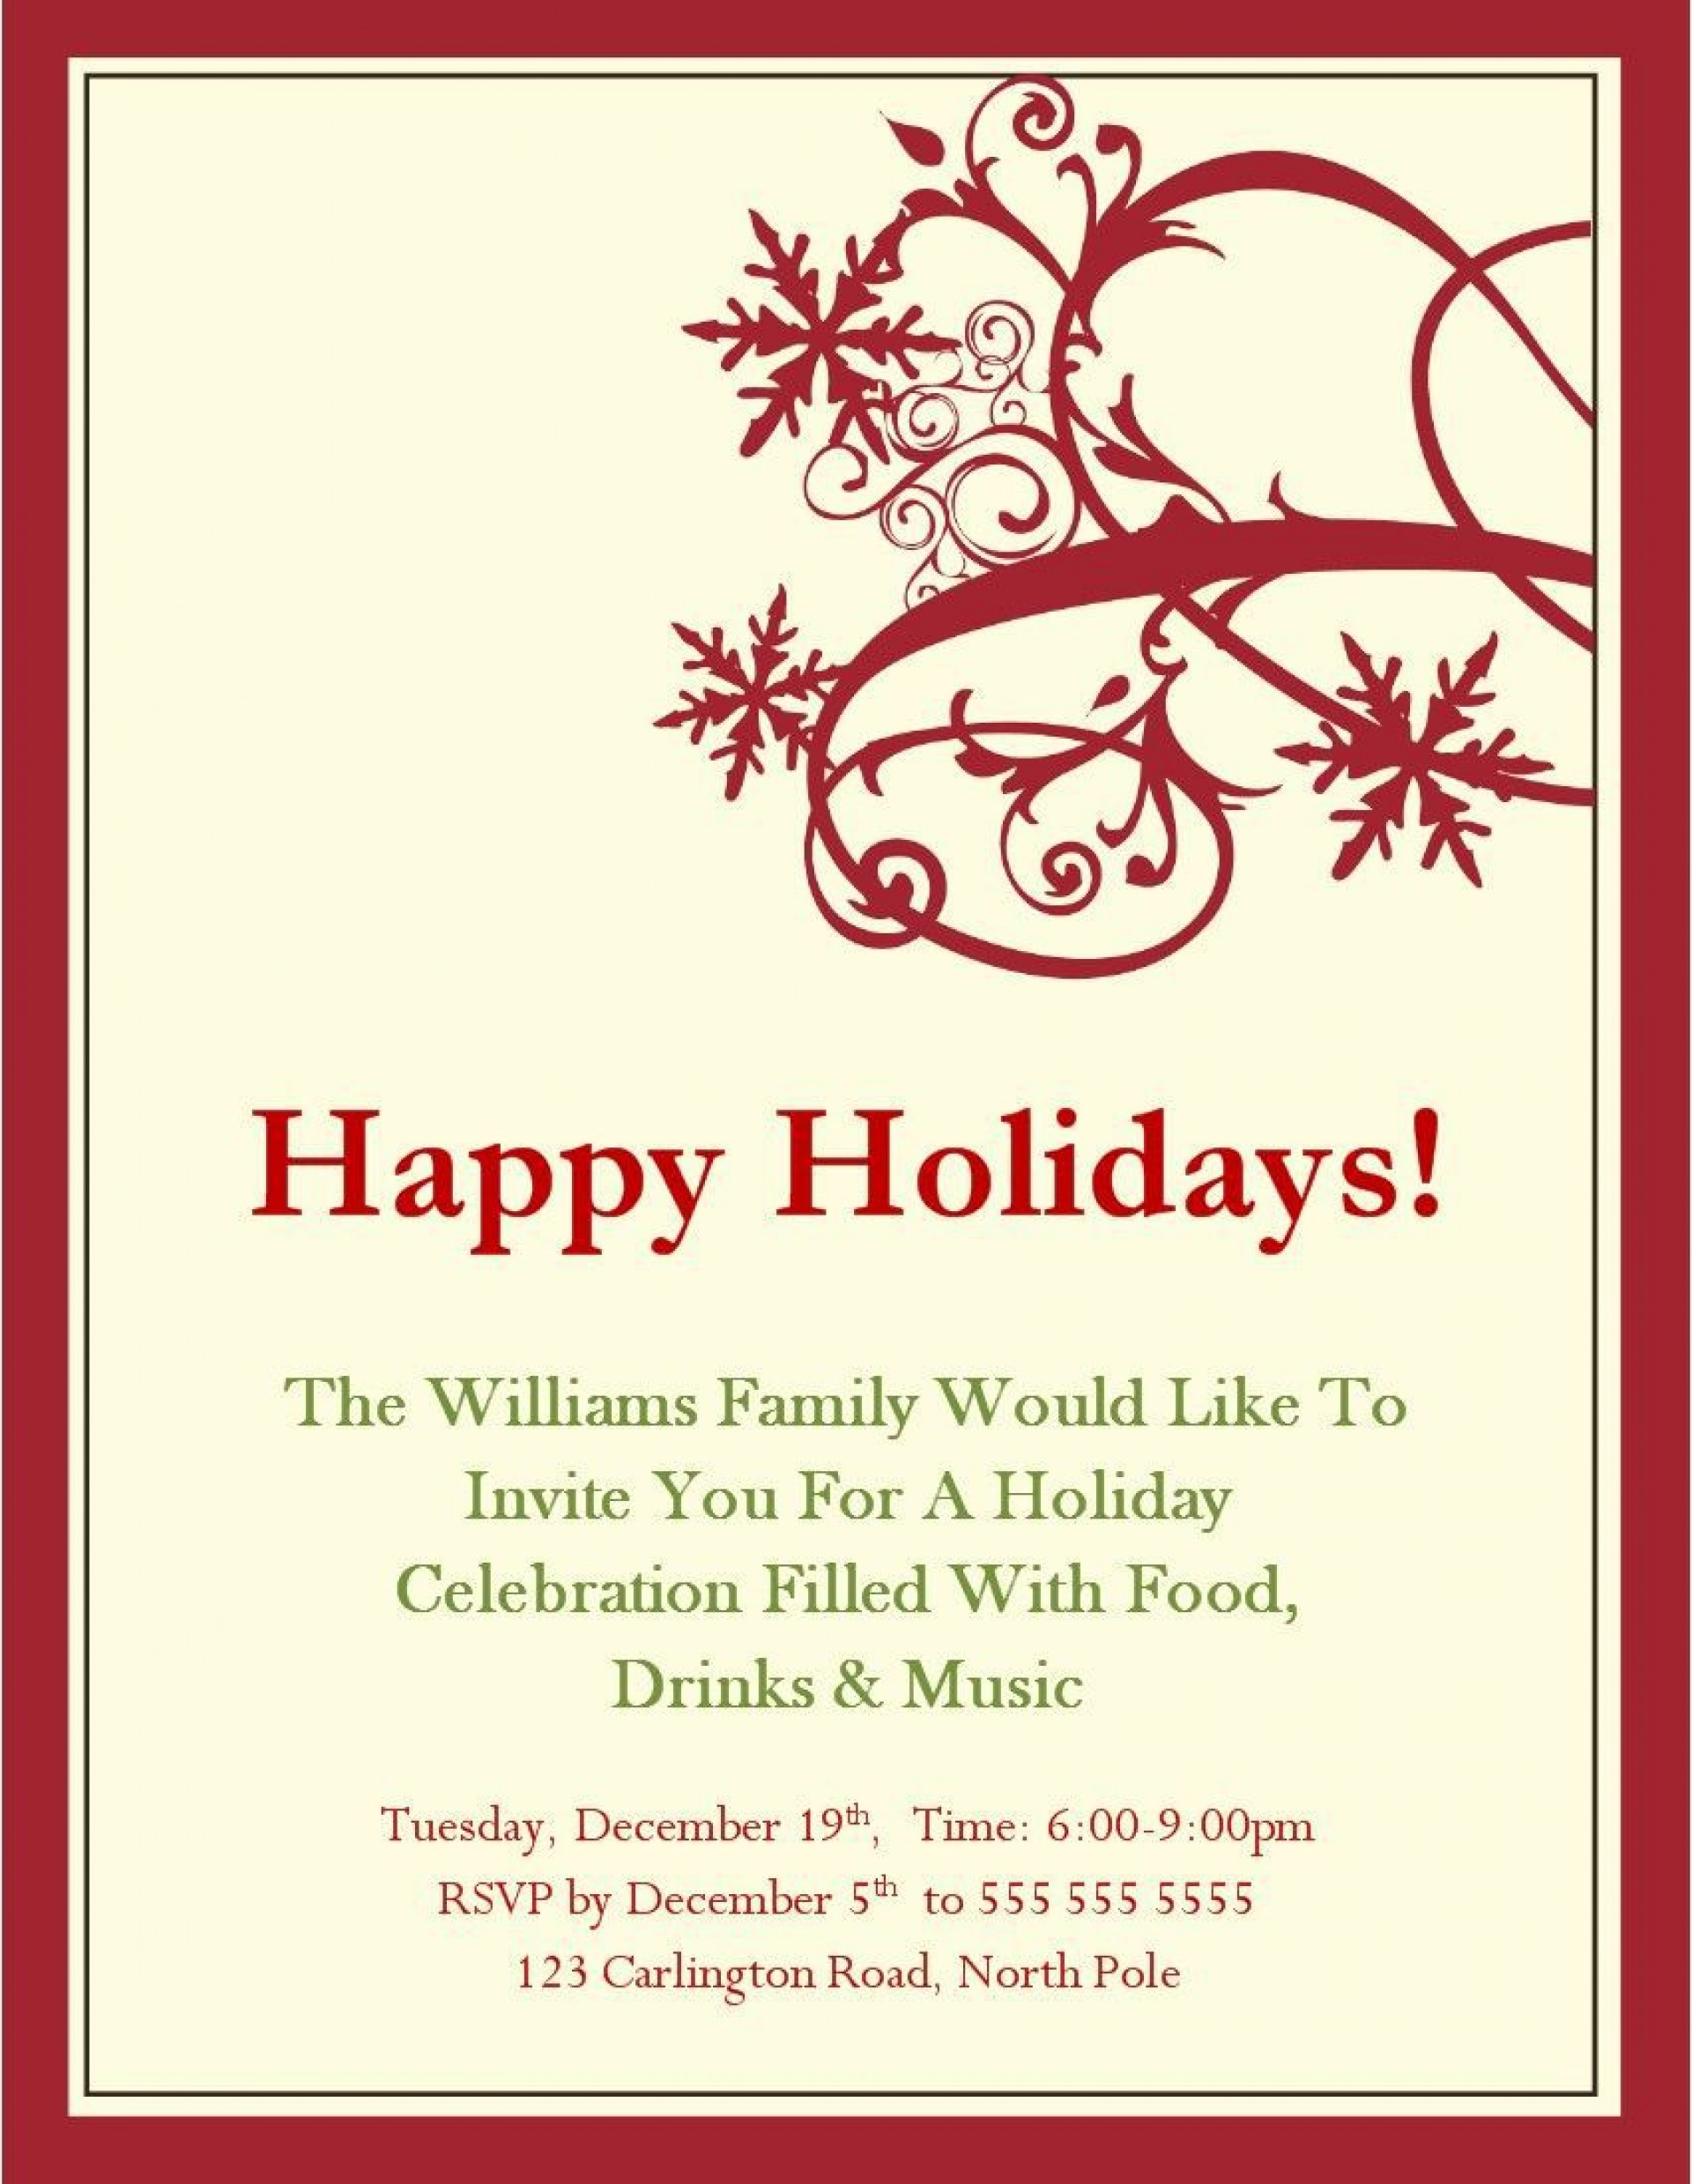 005 Astounding Free Holiday Party Flyer Template Word Photo 1920